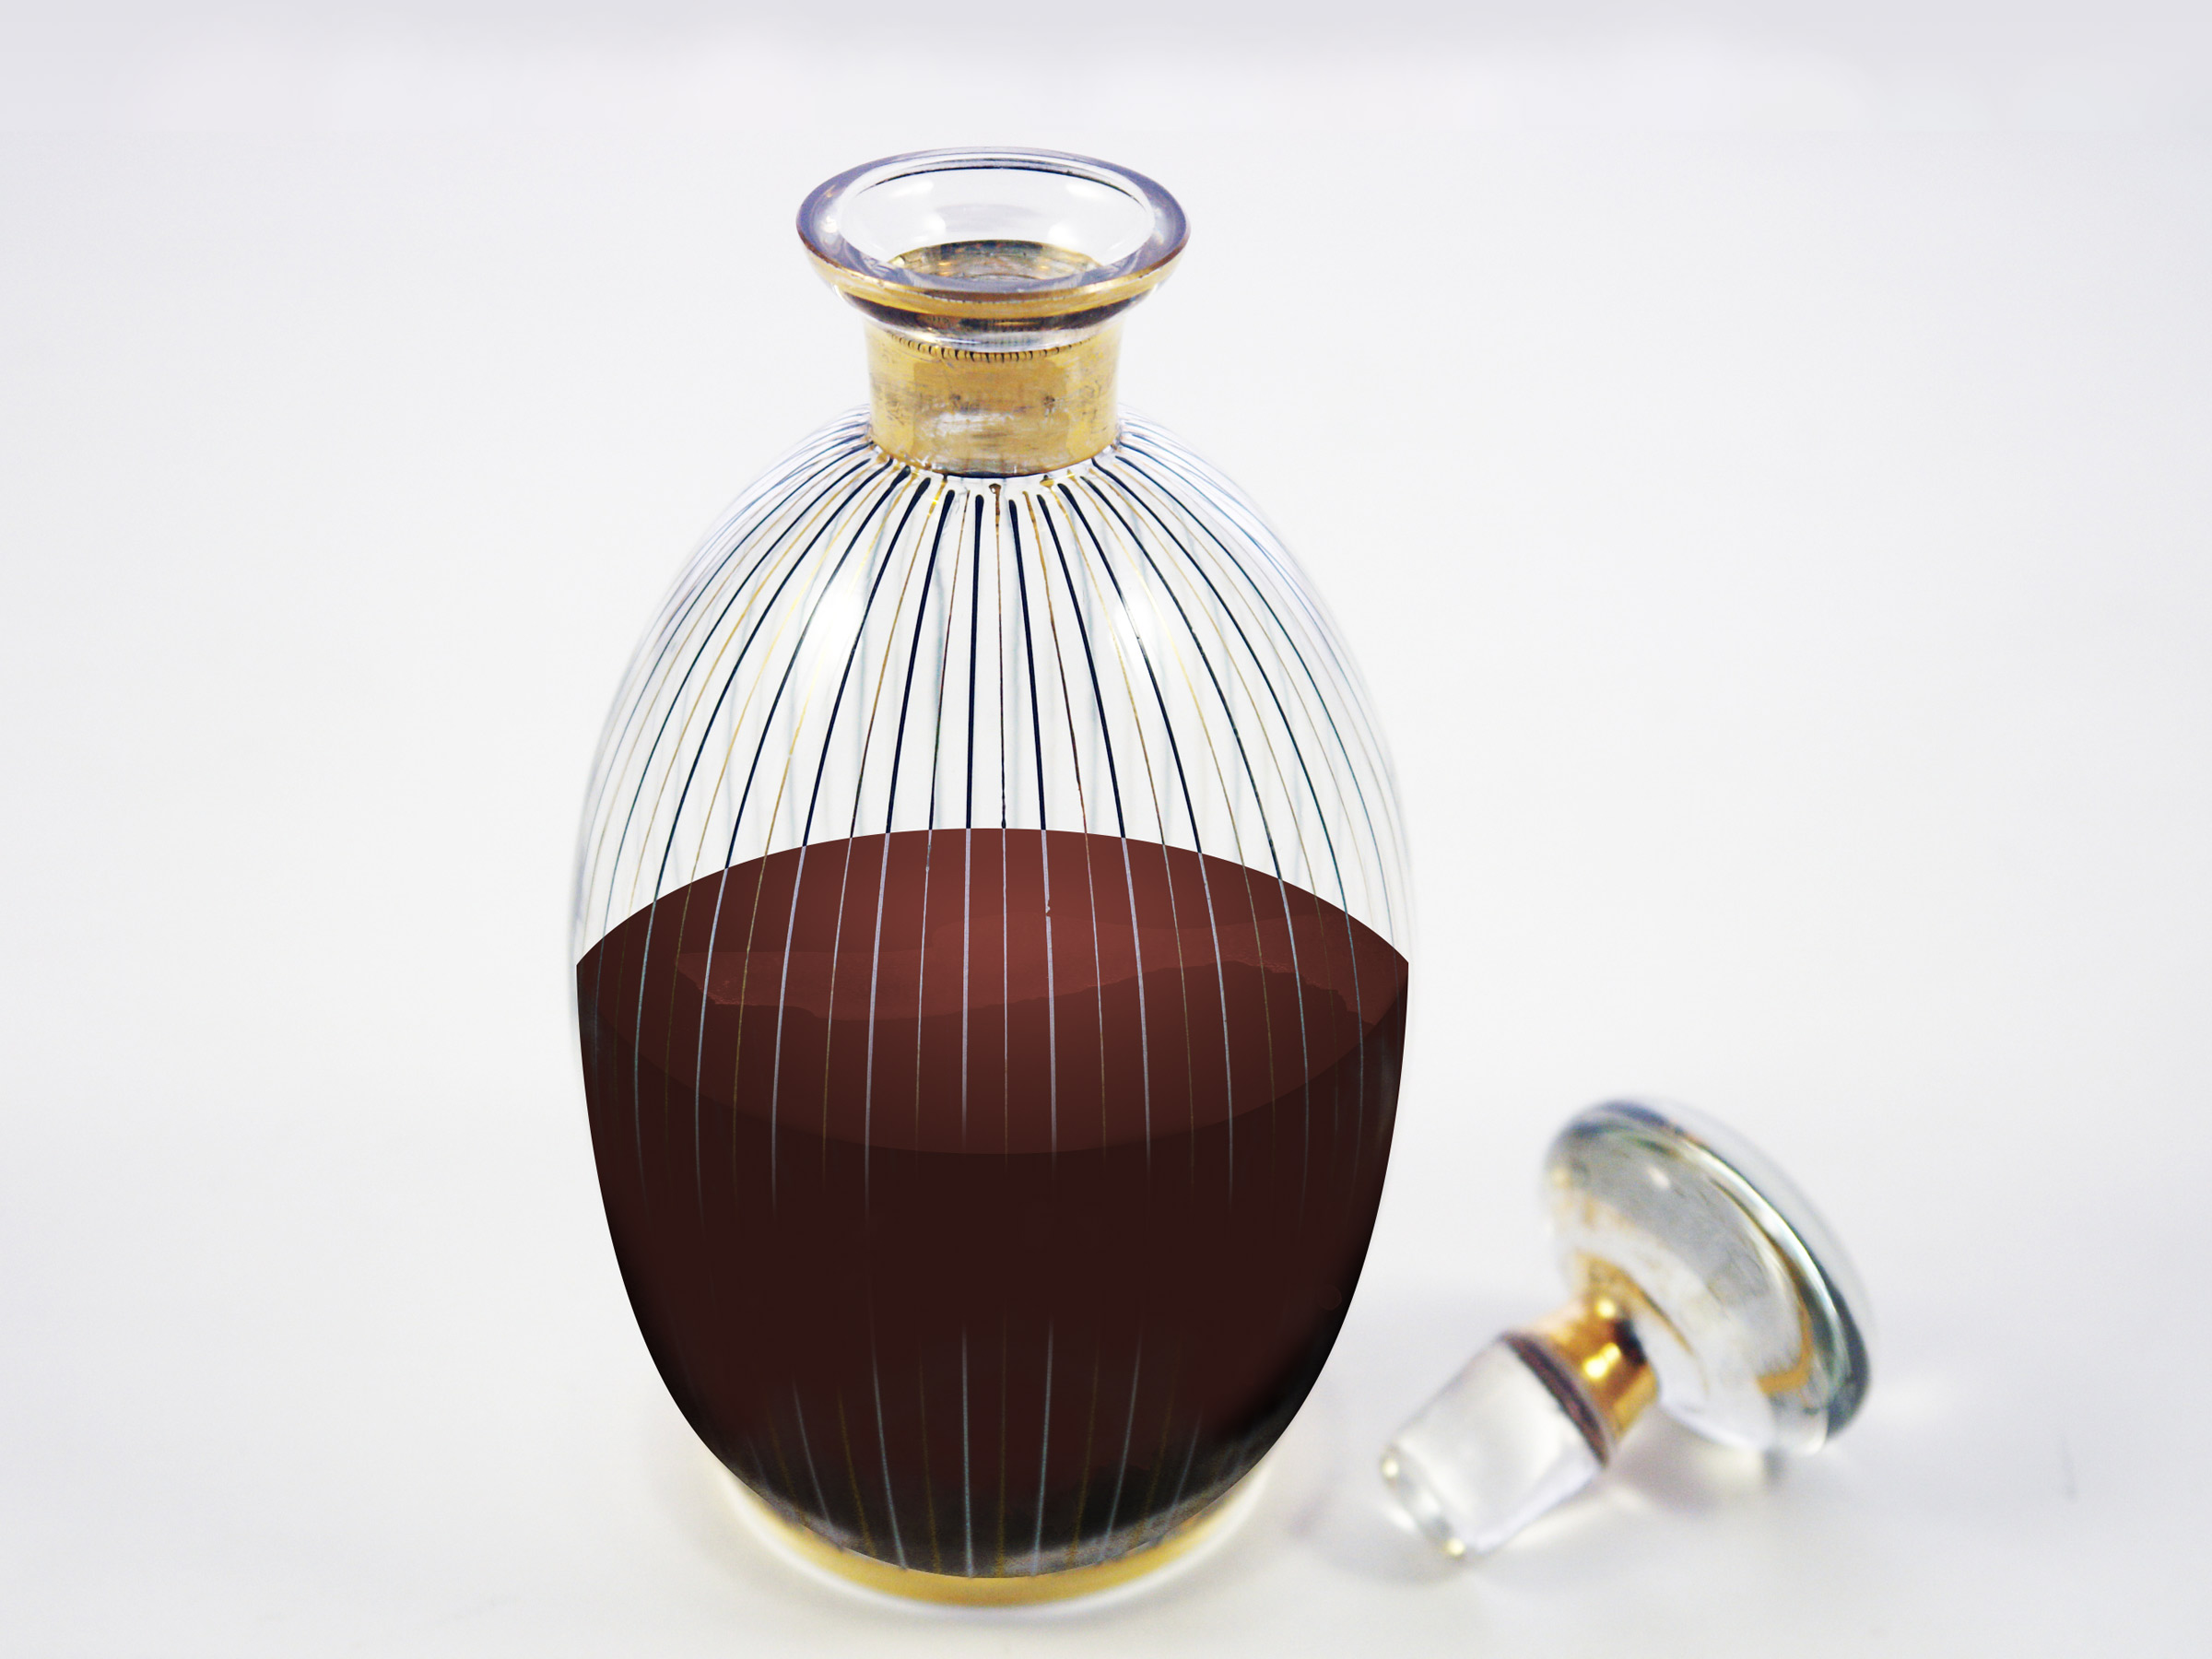 Reg s wine blog post 15 april 26 2016 to decant or for Wine carafes and decanters